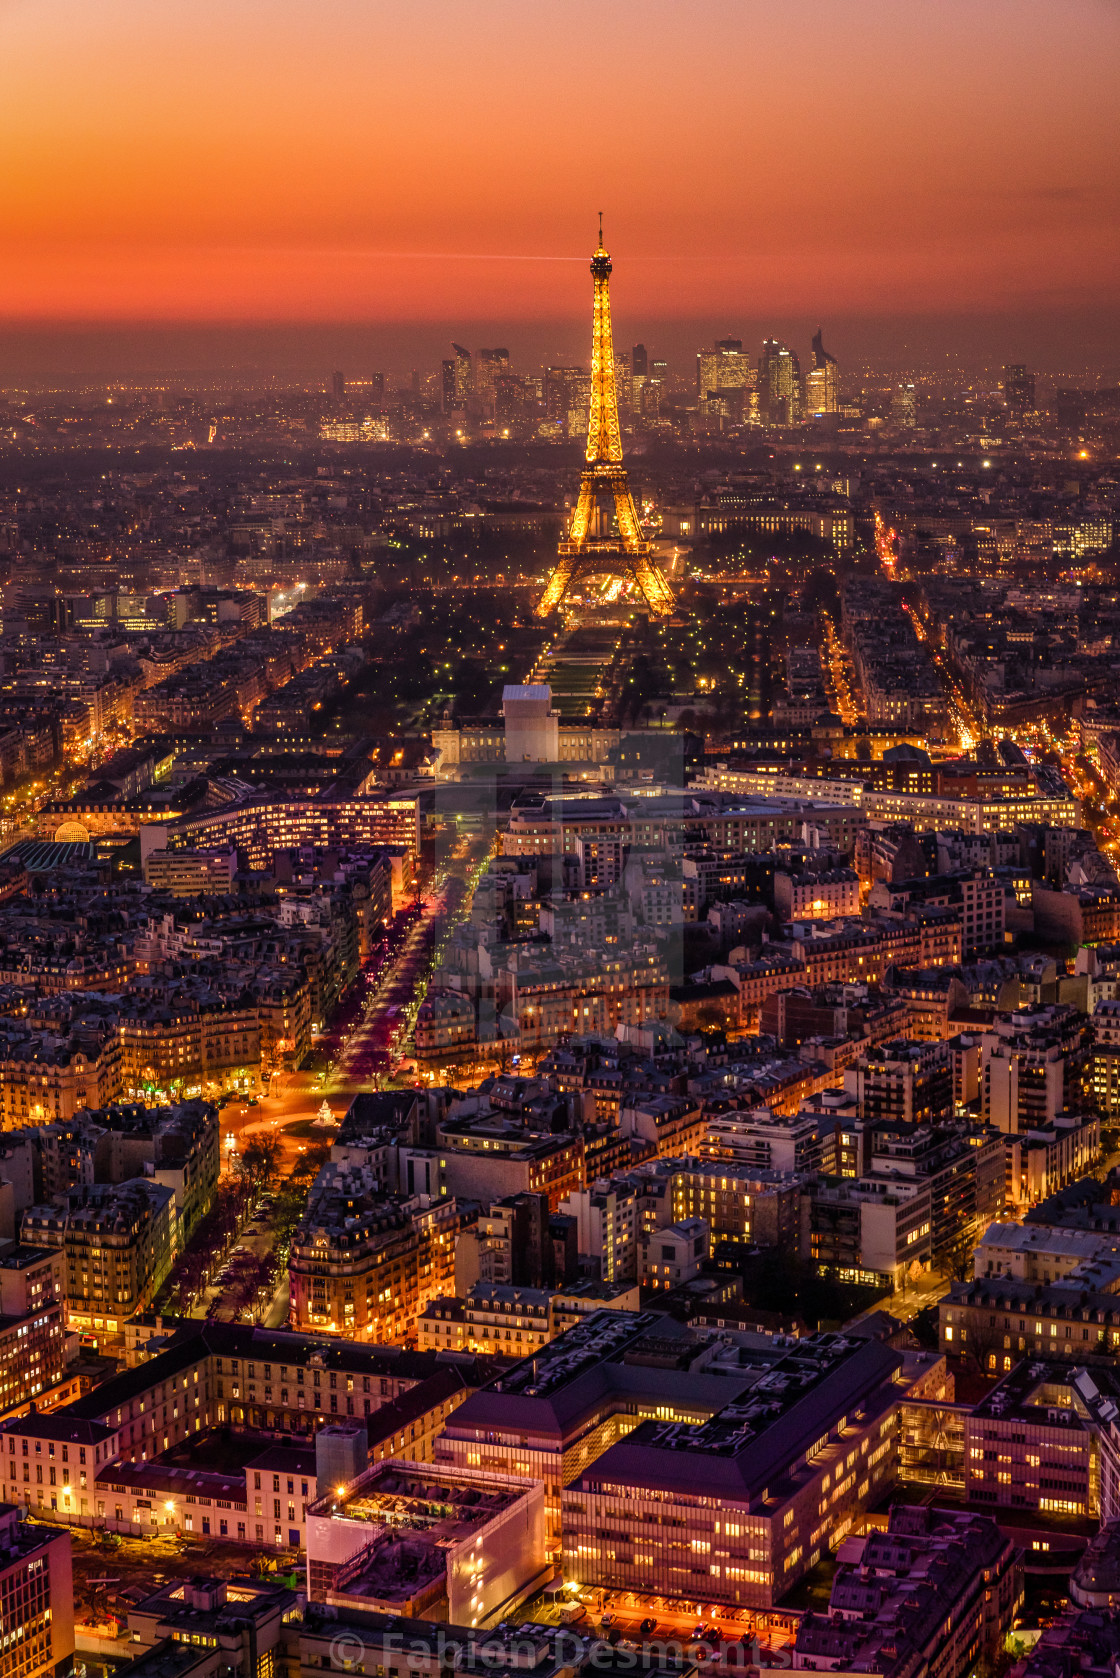 """Eiffel Tower at night"" stock image"